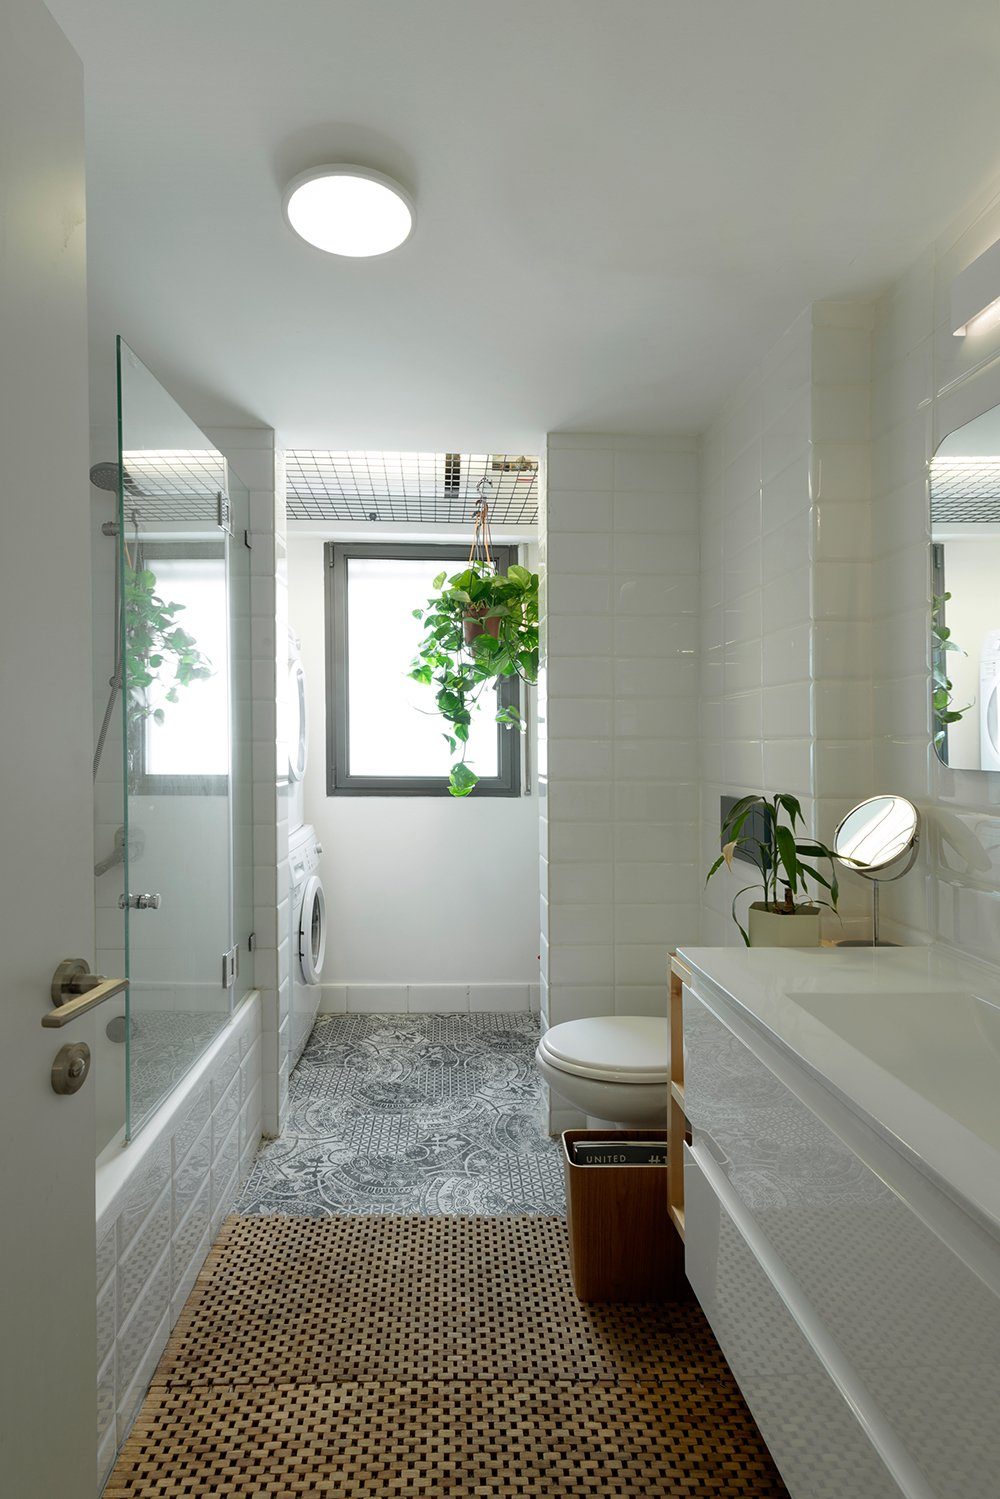 Bath, One Piece, Marble, Ceiling, Drop In, Wall, Drop In, Ceramic Tile, and Ceramic Tile The Main Bathroom  Bath Drop In Wall Ceiling Photos from The Flea Market Apartment